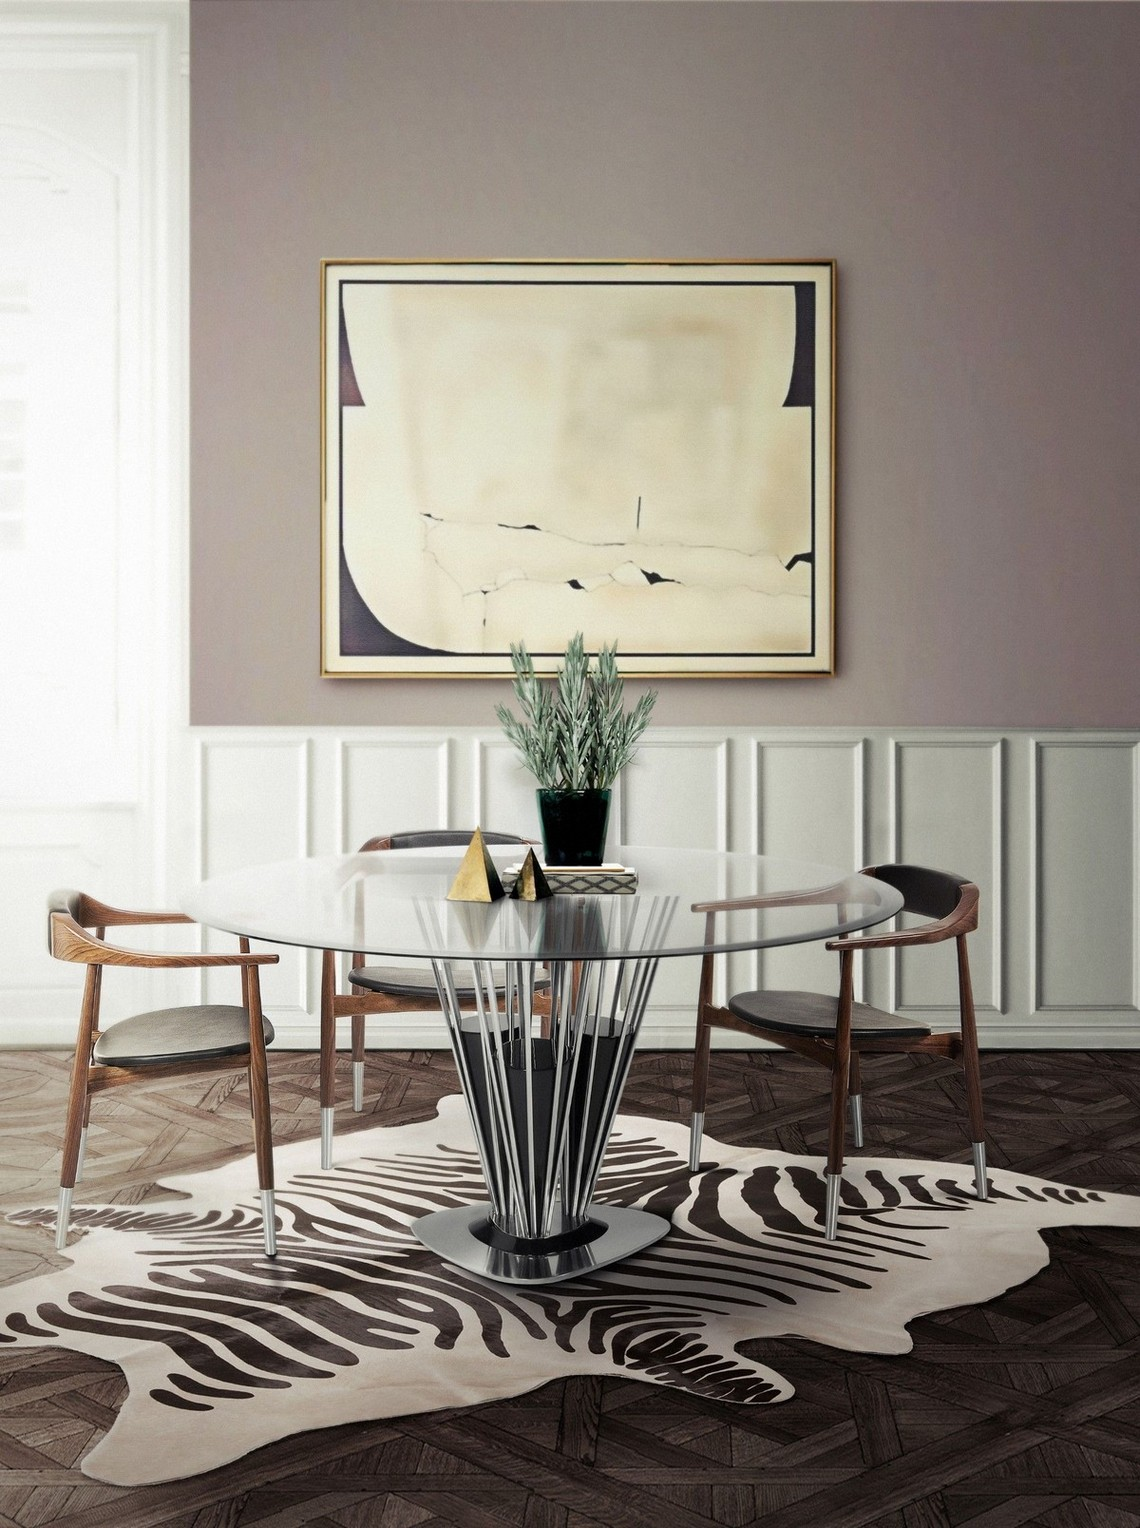 Top Exclusive Dining Tables exclusive dining tables Top Exclusive Dining Tables winchester